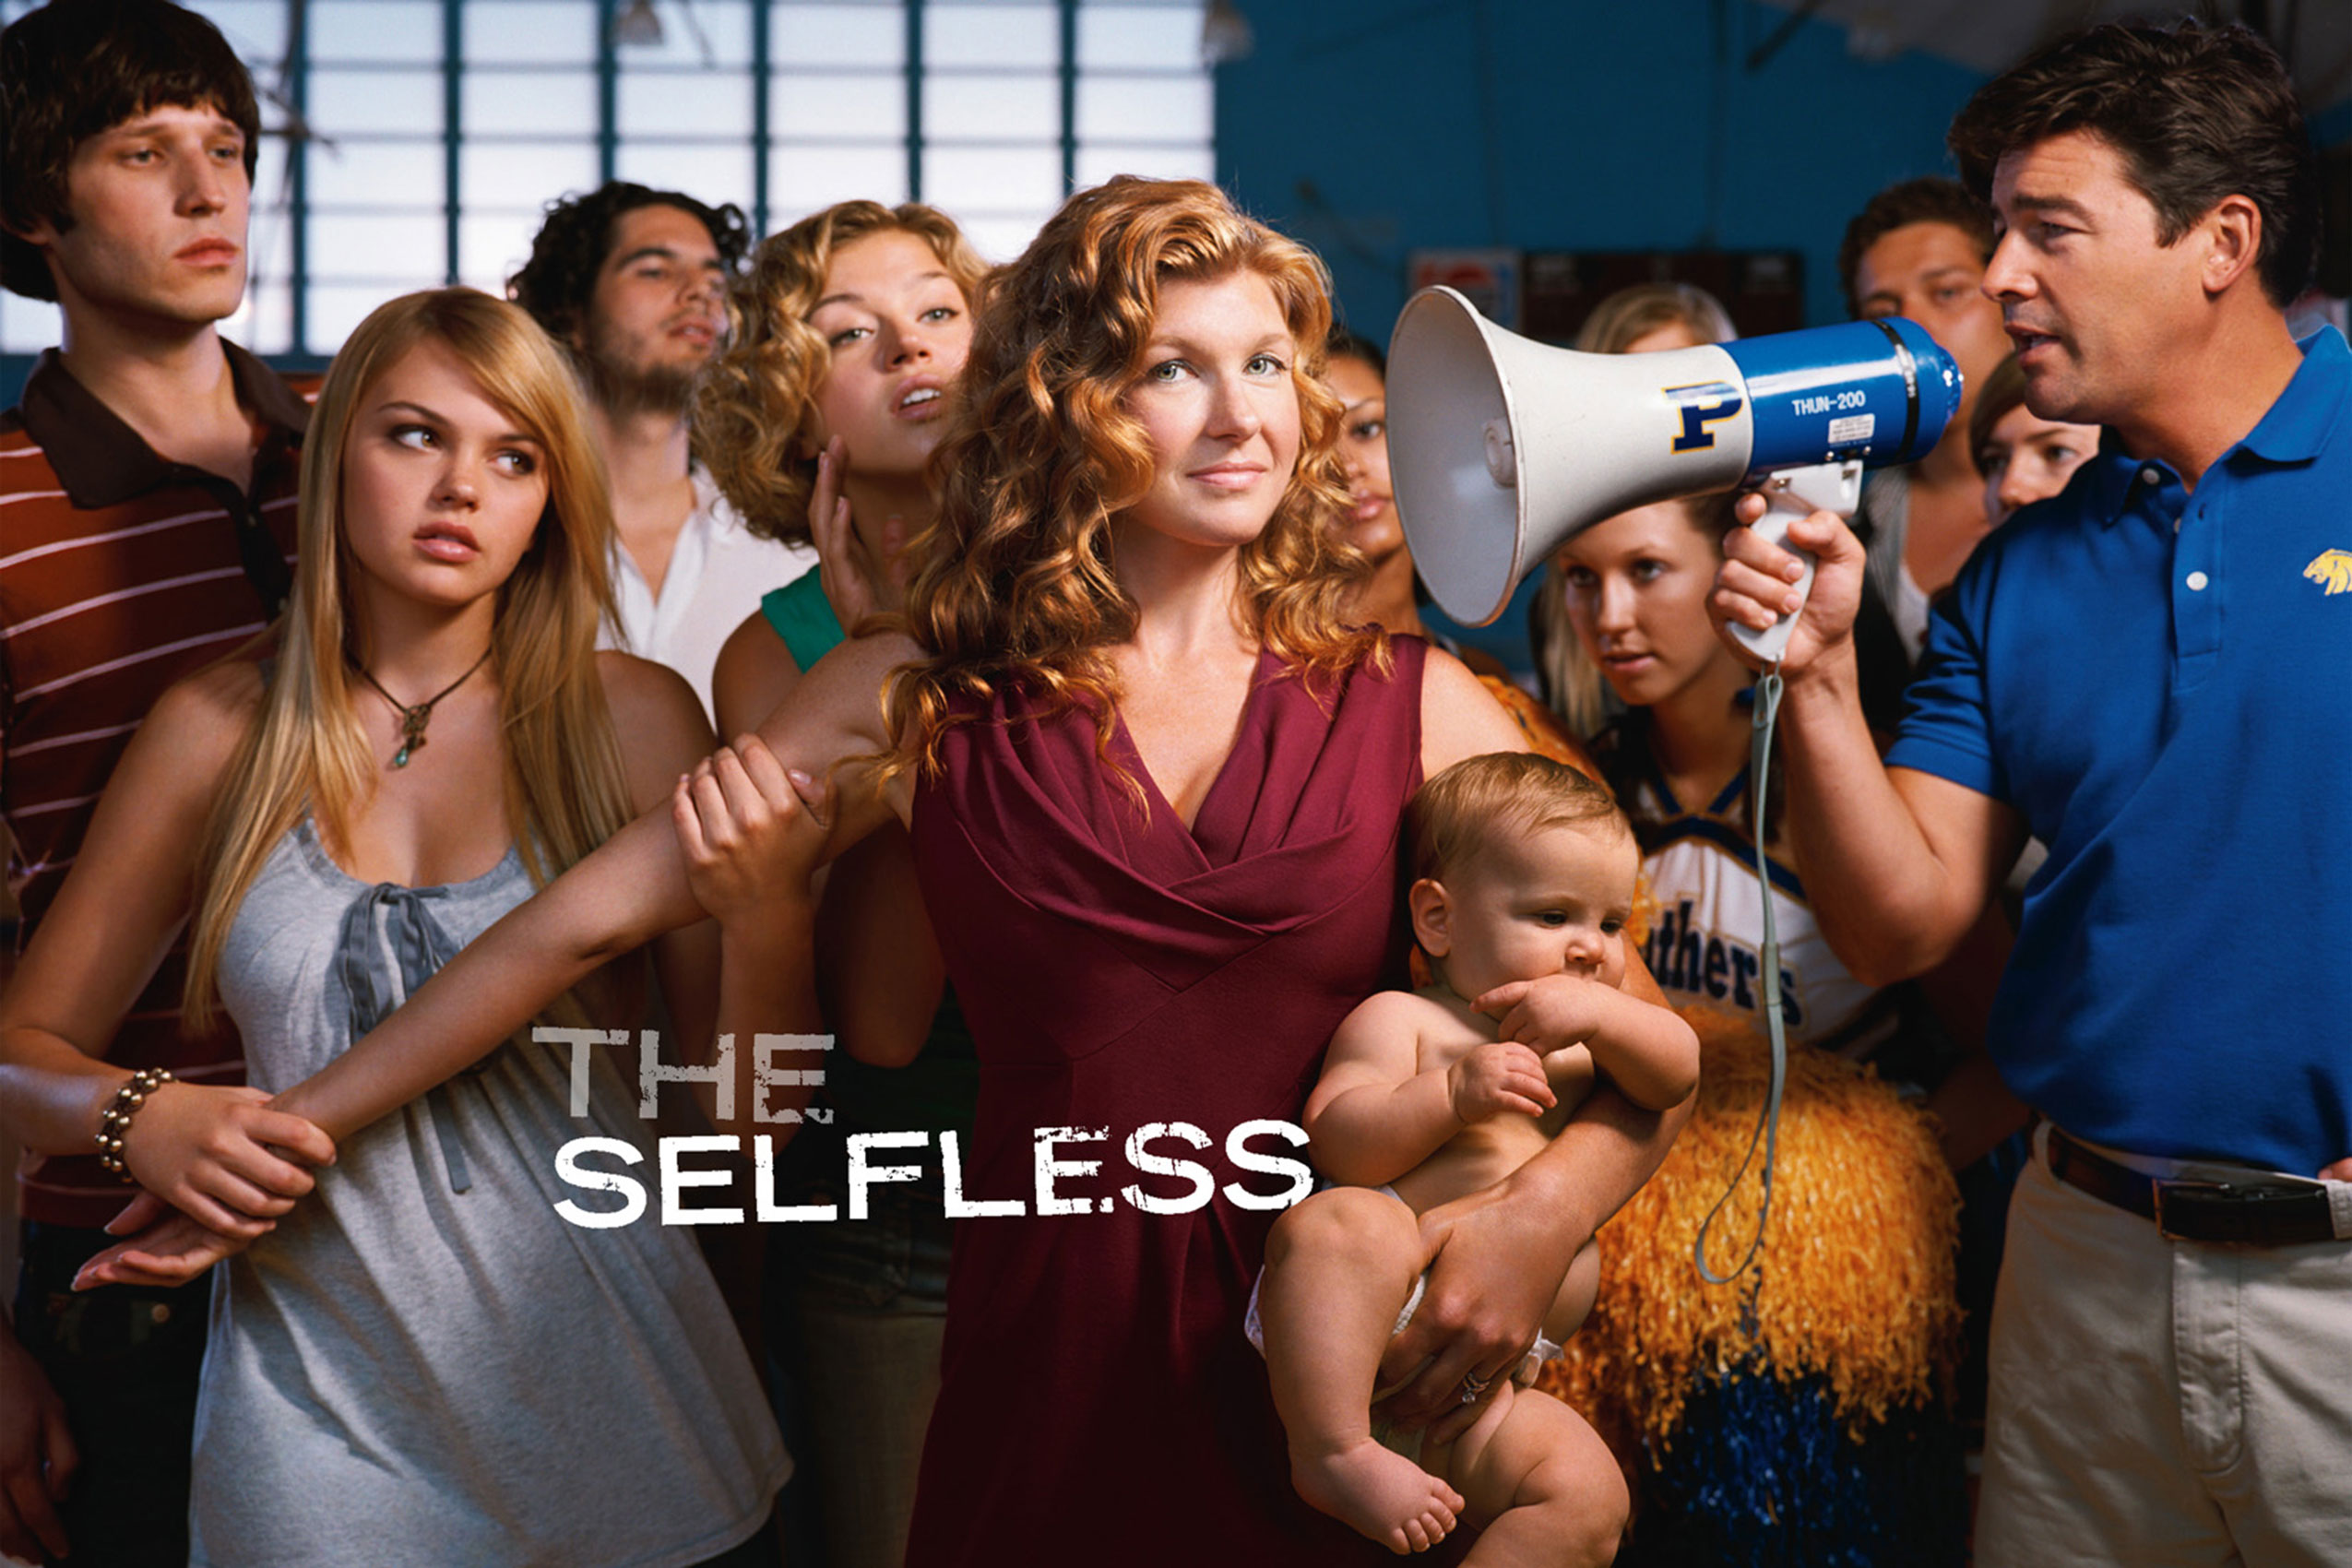 23_Friday_Night_Lights_DTSCH_081008_tearsheet_The_Selfless